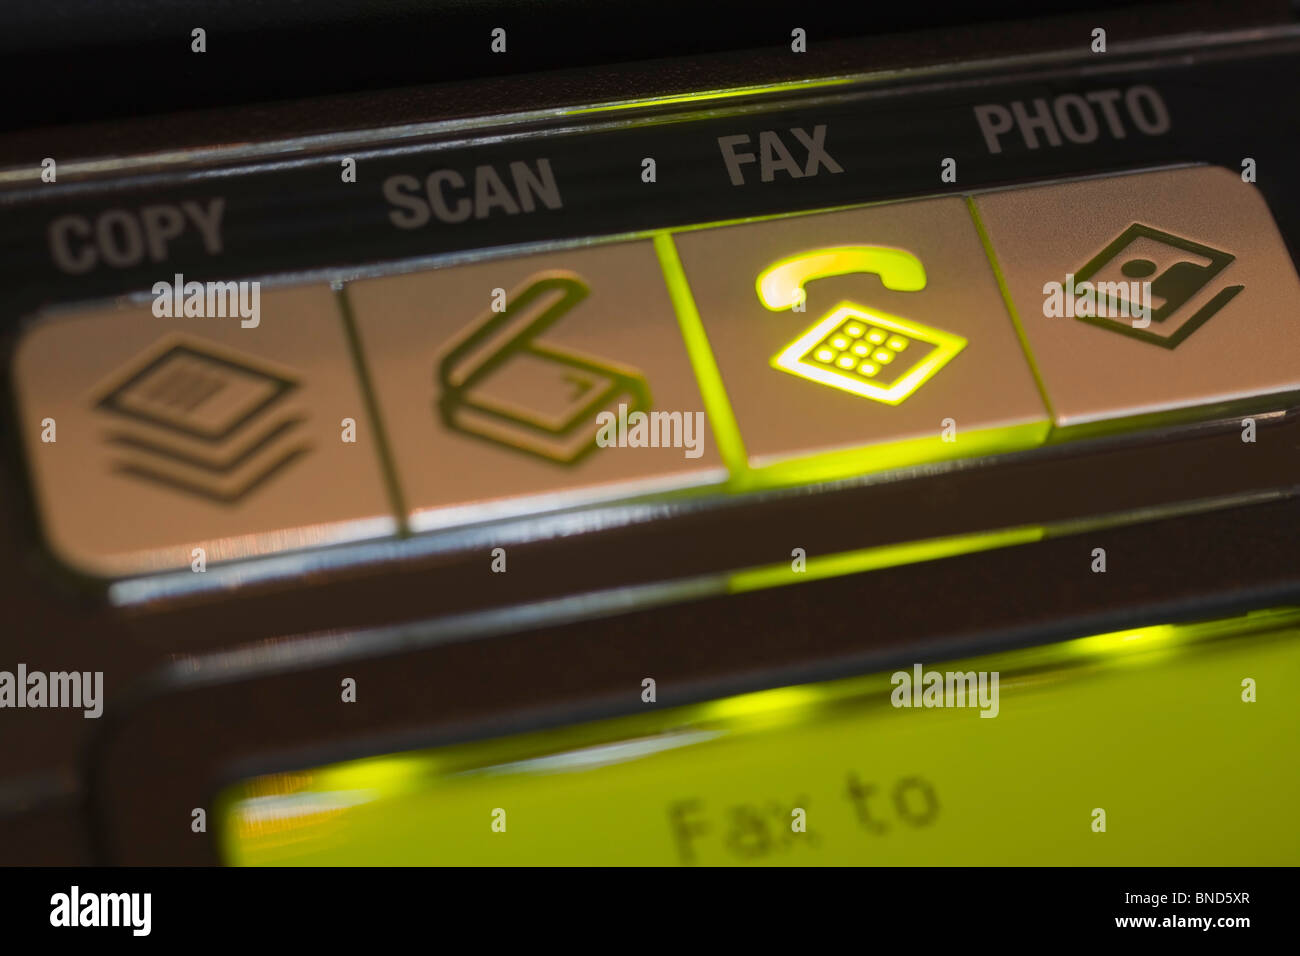 Control panel on a multifunction or All-In-One printer indicating selection of the fax option. - Stock Image